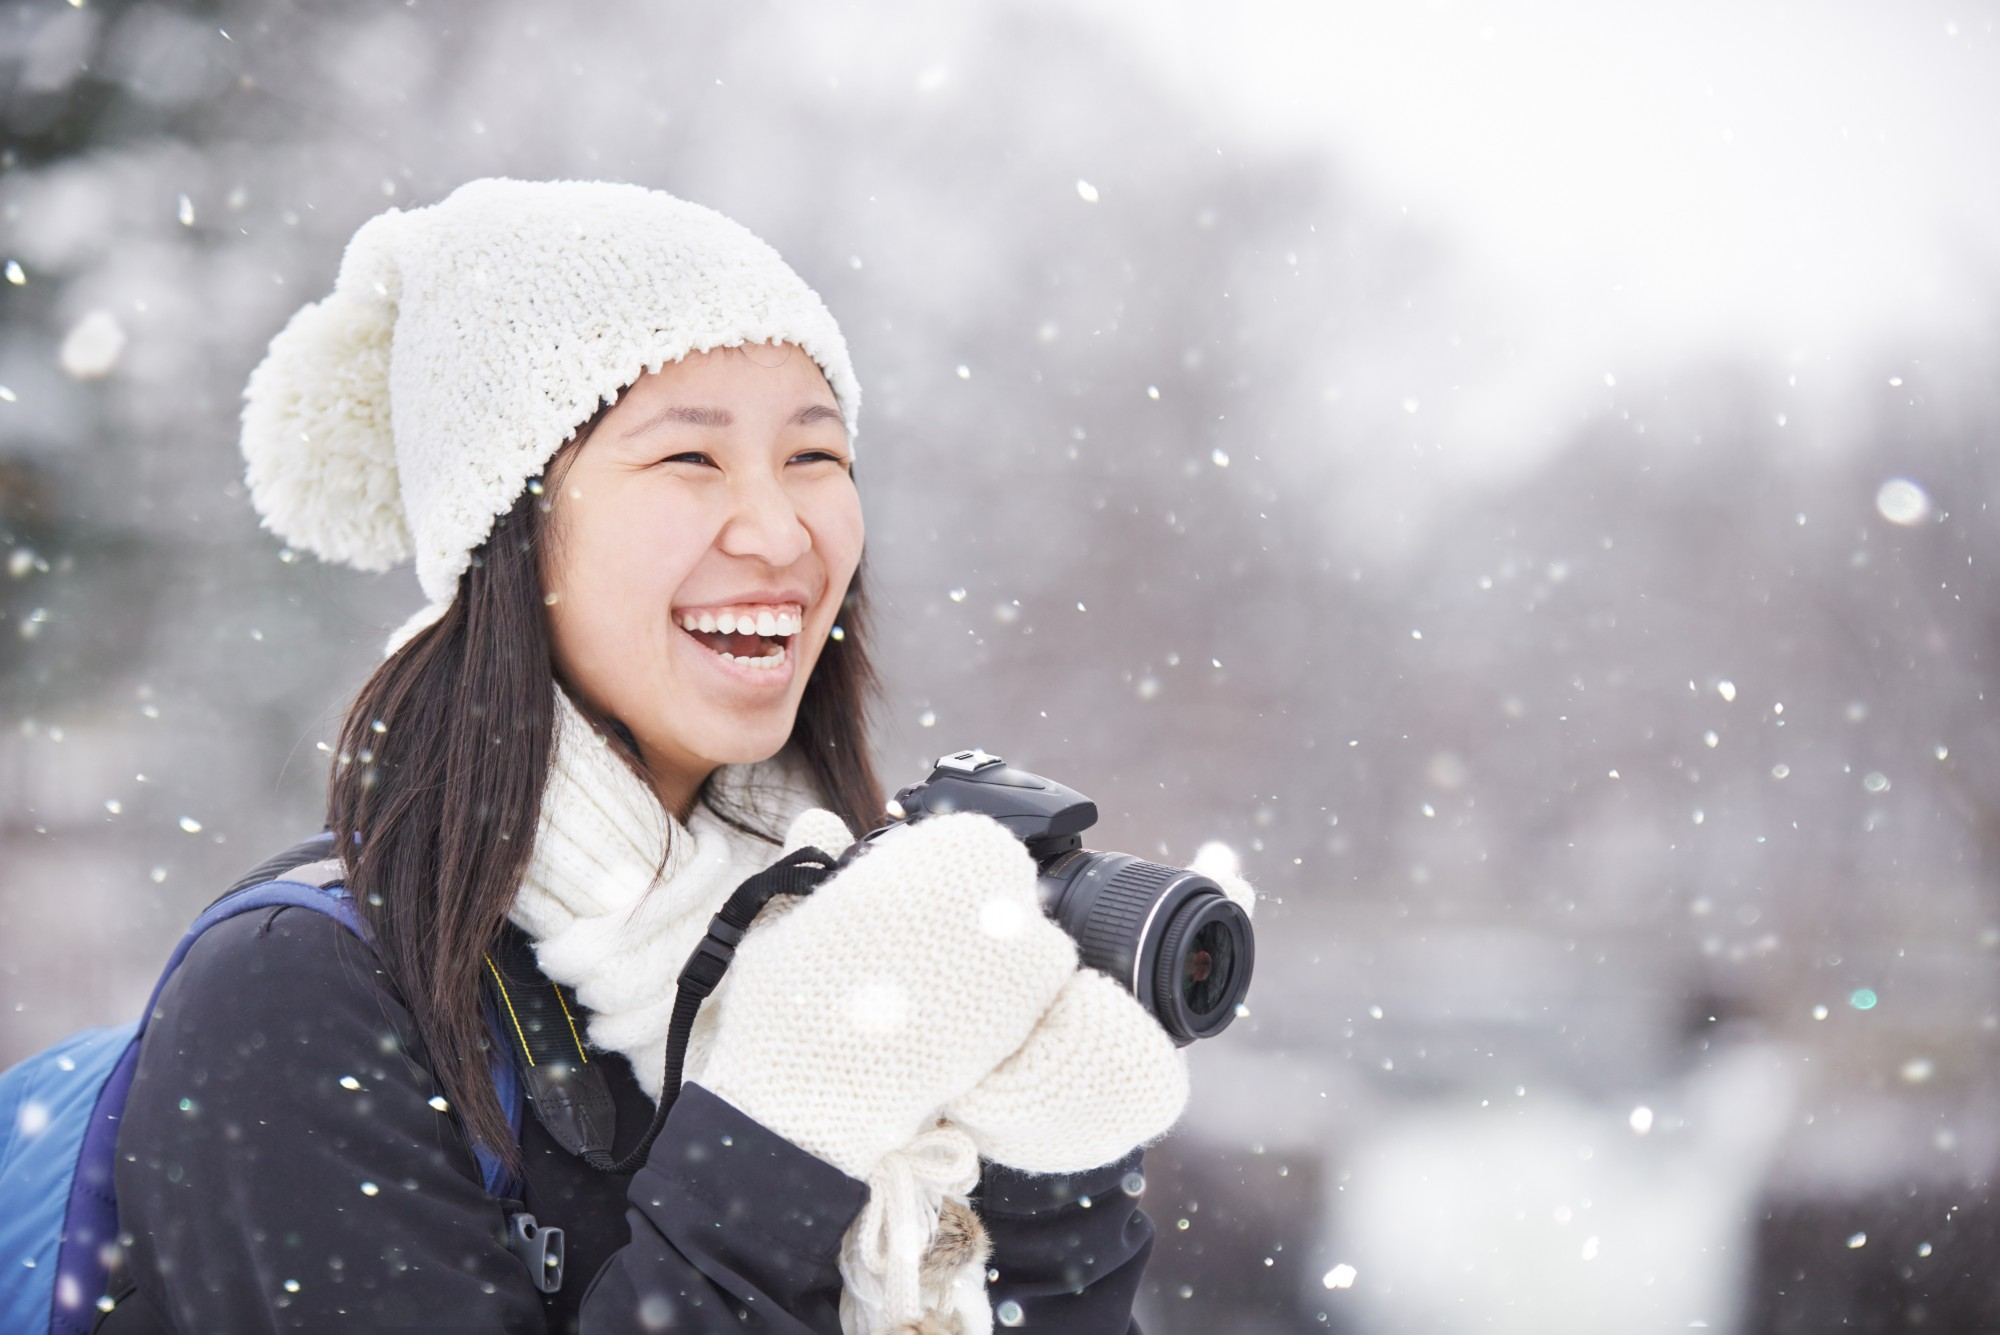 A woman wearing a hat an mittens laughs whilst holding a camera